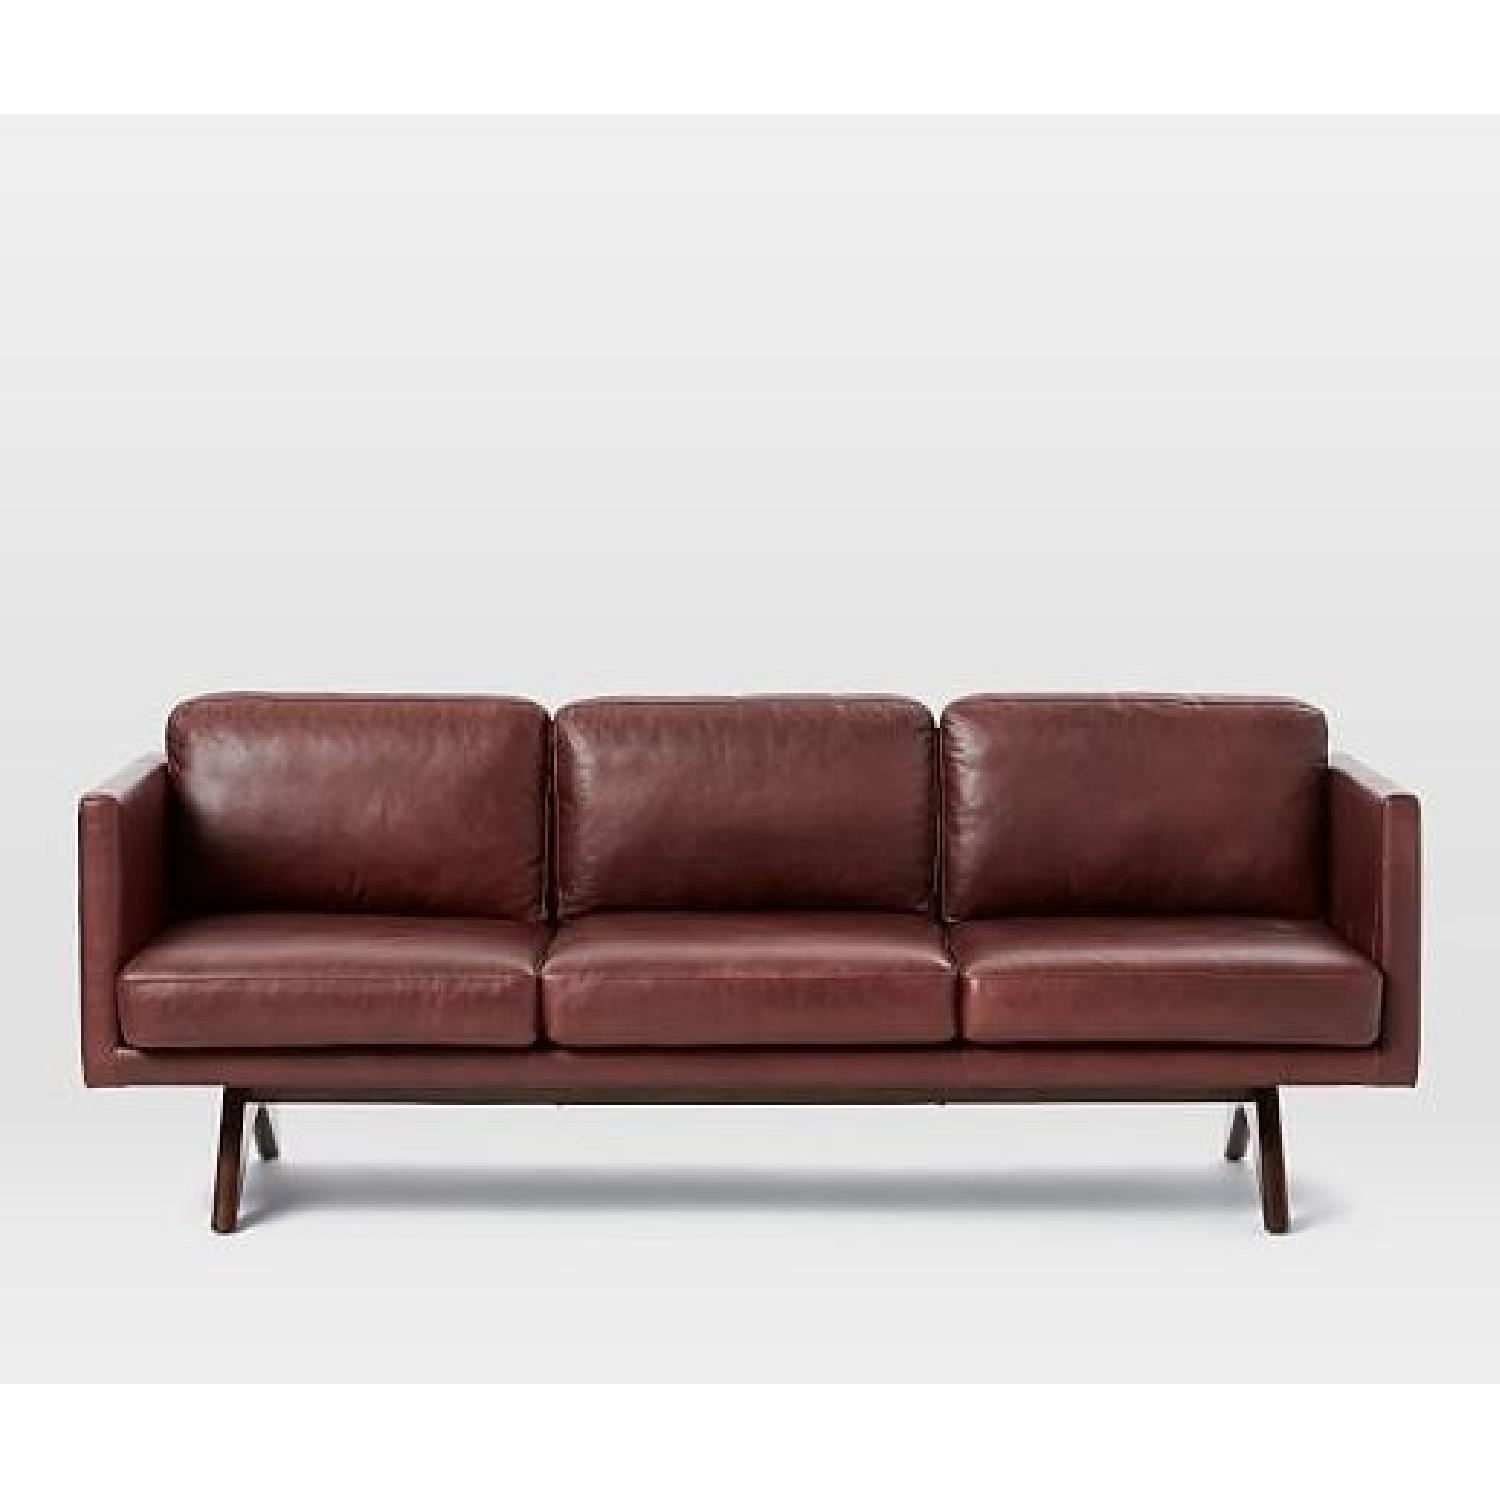 West Elm Brooklyn Sofa In Oxblood Leather ...